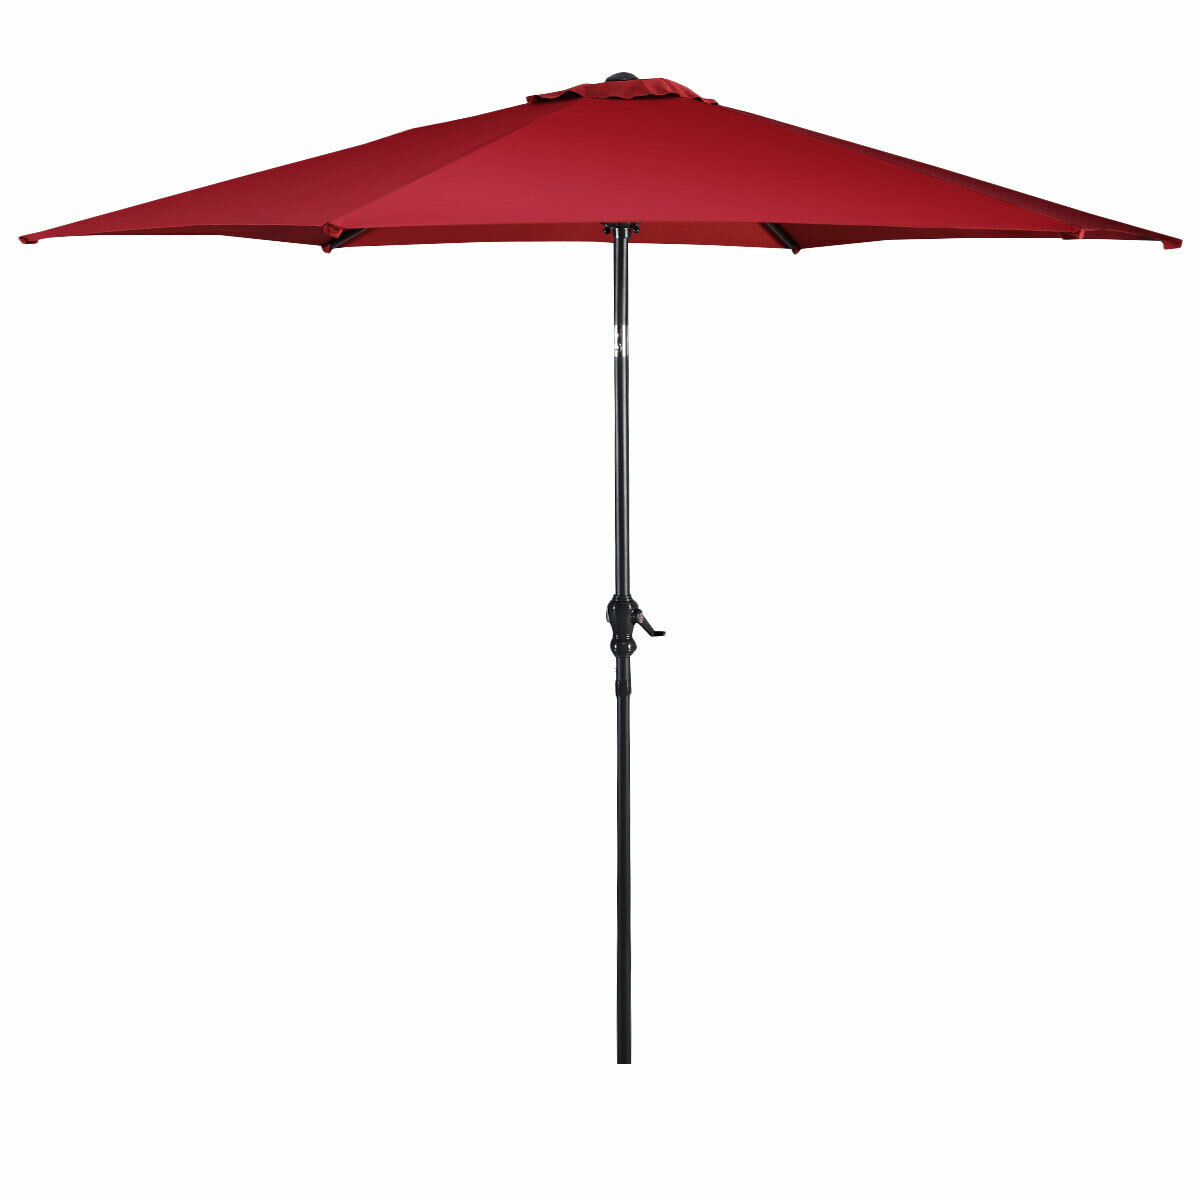 Costway 10FT Patio Umbrella 6 Ribs Market Steel Tilt W/ Crank Outdoor Garden Burgundy